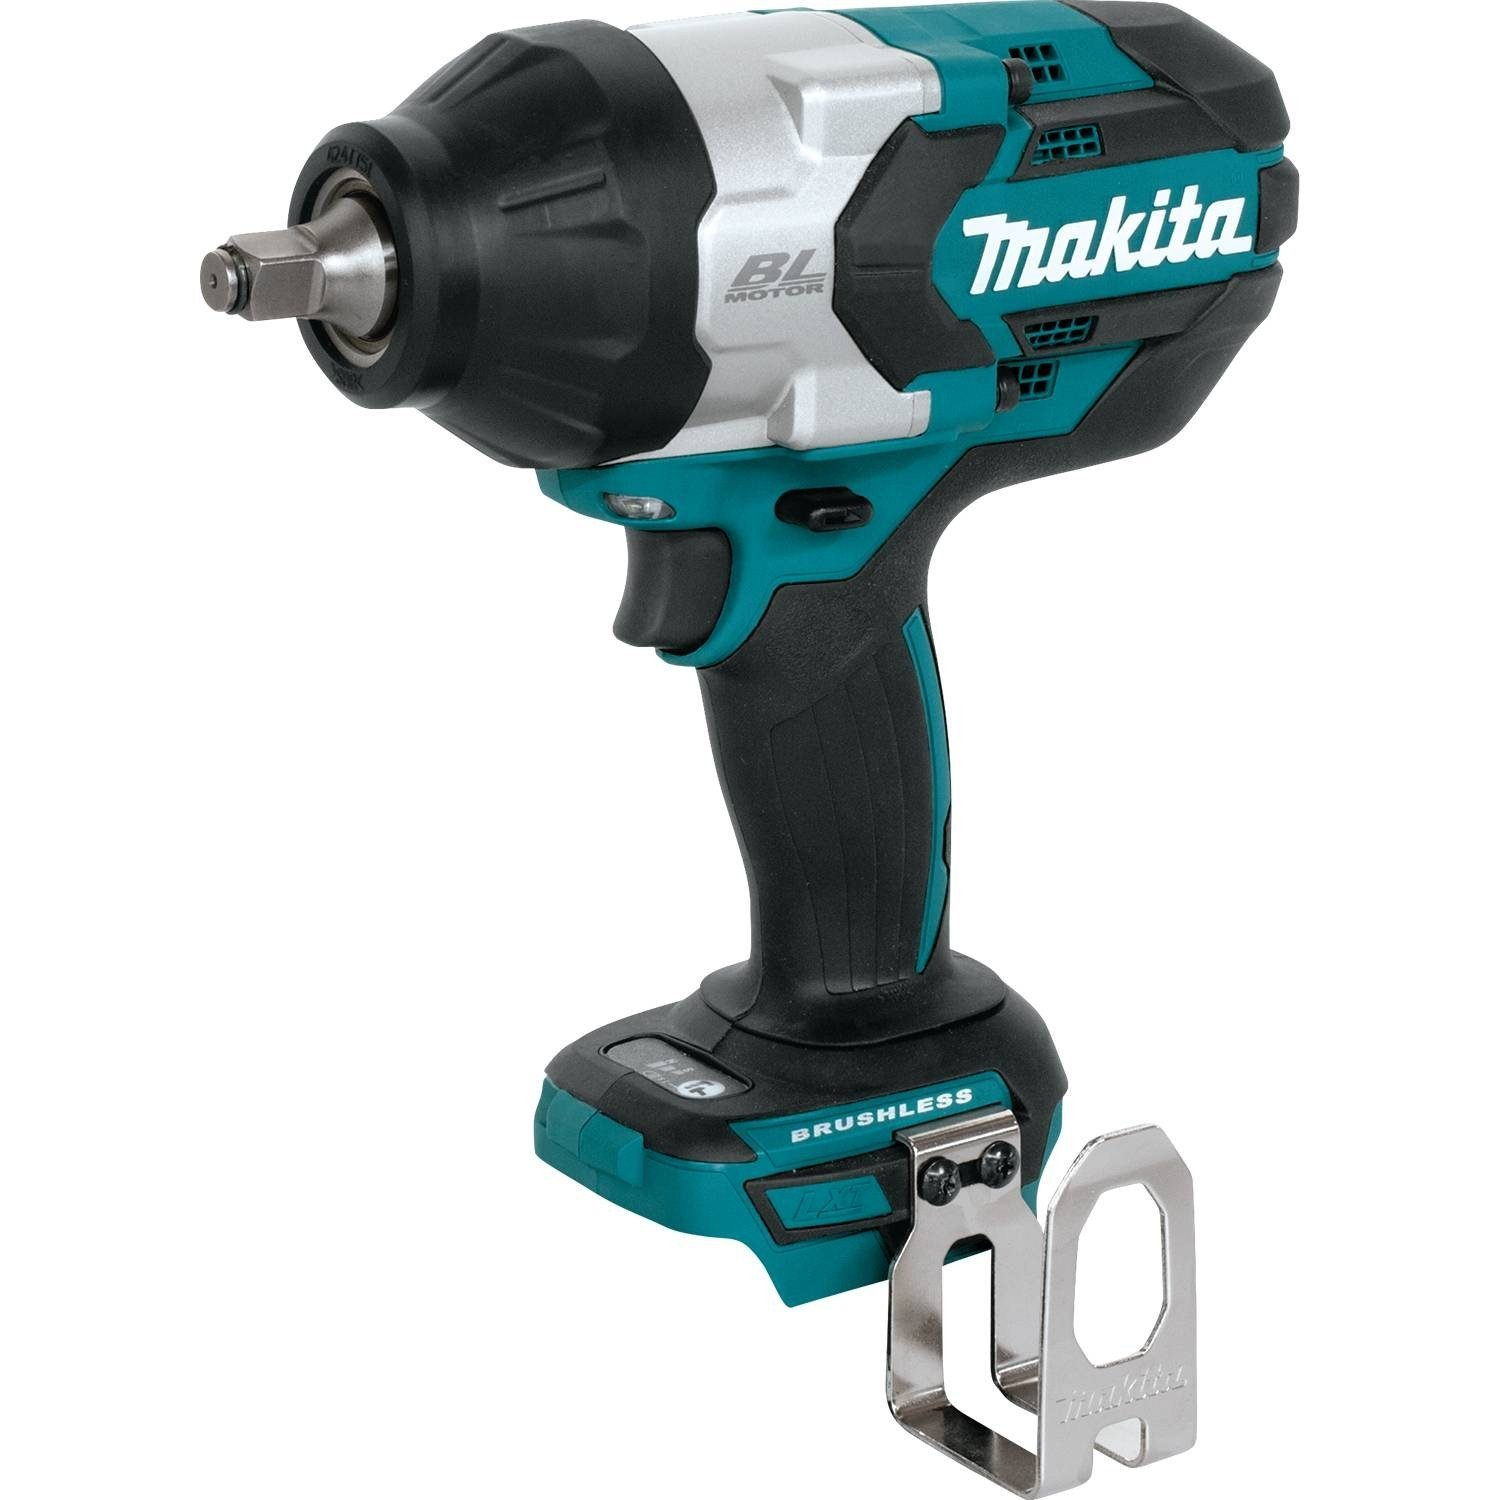 Makita XWT08Z Brushless Cordless Impact Wrench Lithium-Ion, Square Drive – Available in 2 Sizes and with a socket set